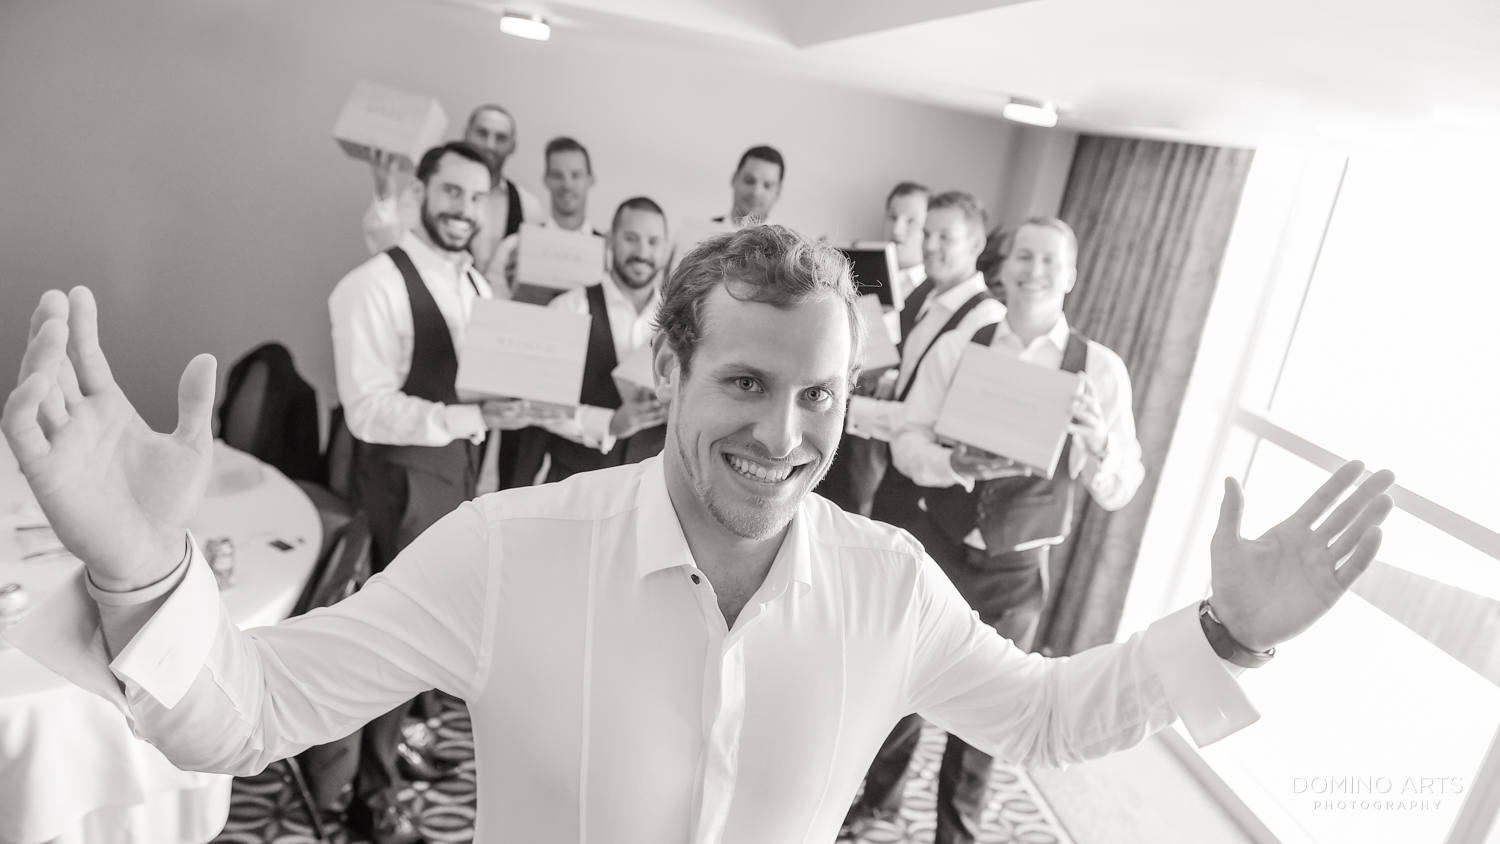 Groom getting ready picture at Boca Raton Resort